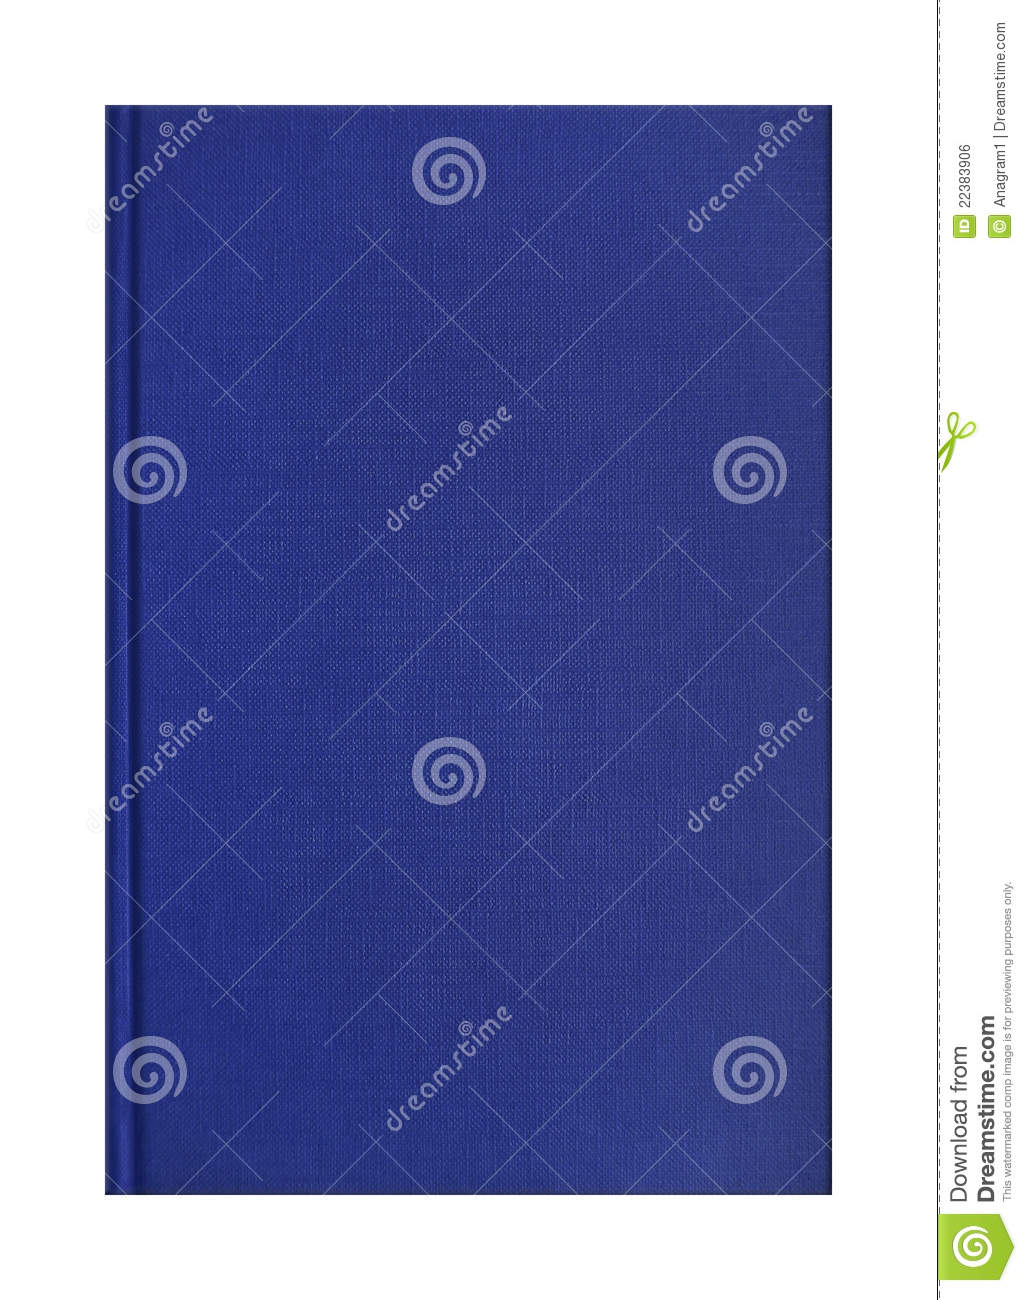 Blue Book Cover Texture ~ Blue book cover royalty free stock image